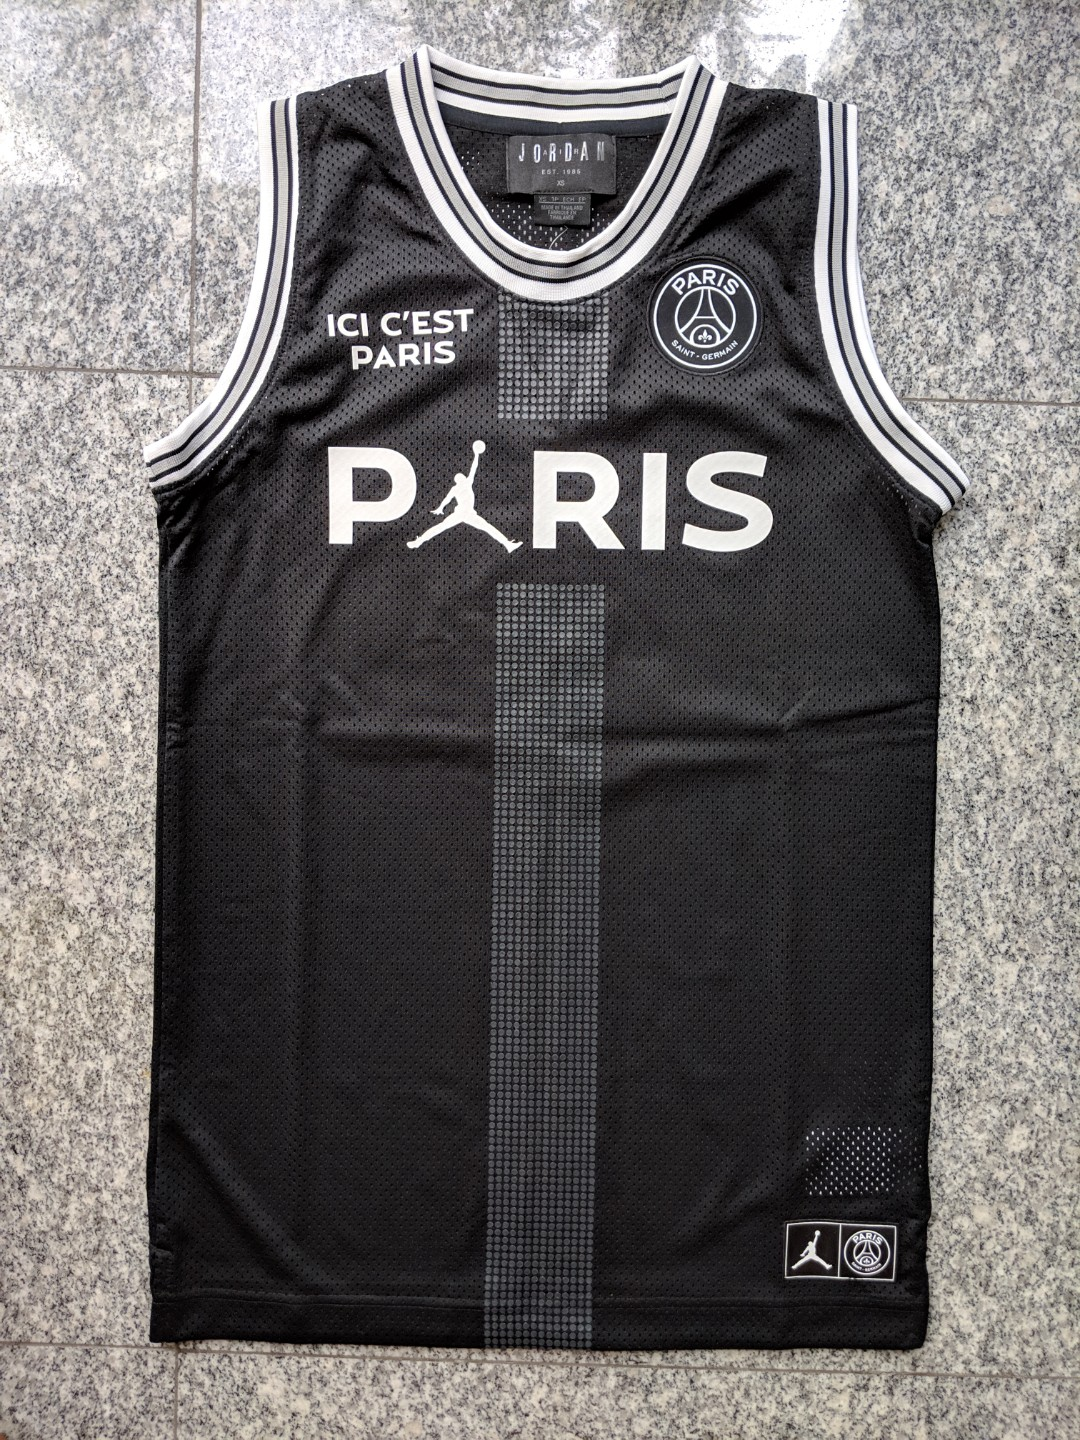 370400bd263b INSTOCK  Jordan x PSG limited edition collaboration basketball jersey as  worn by Neymar